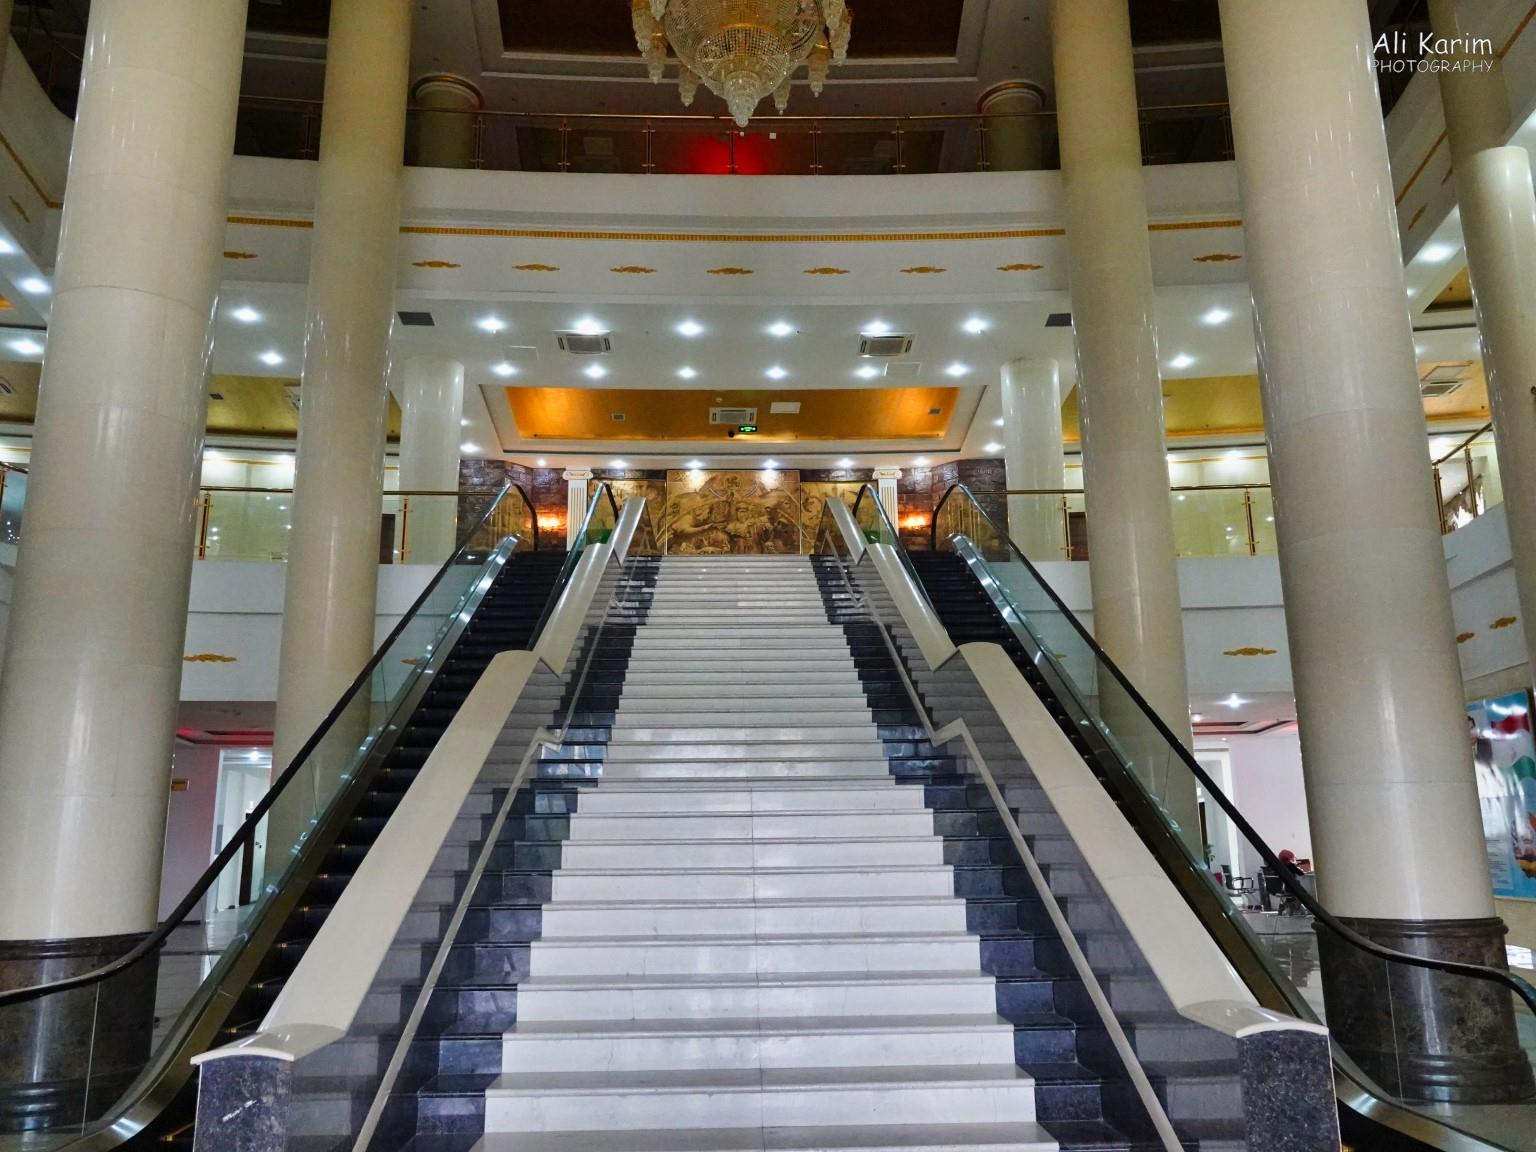 More Dushanbe, Tajikistan Grand staircase inside the library